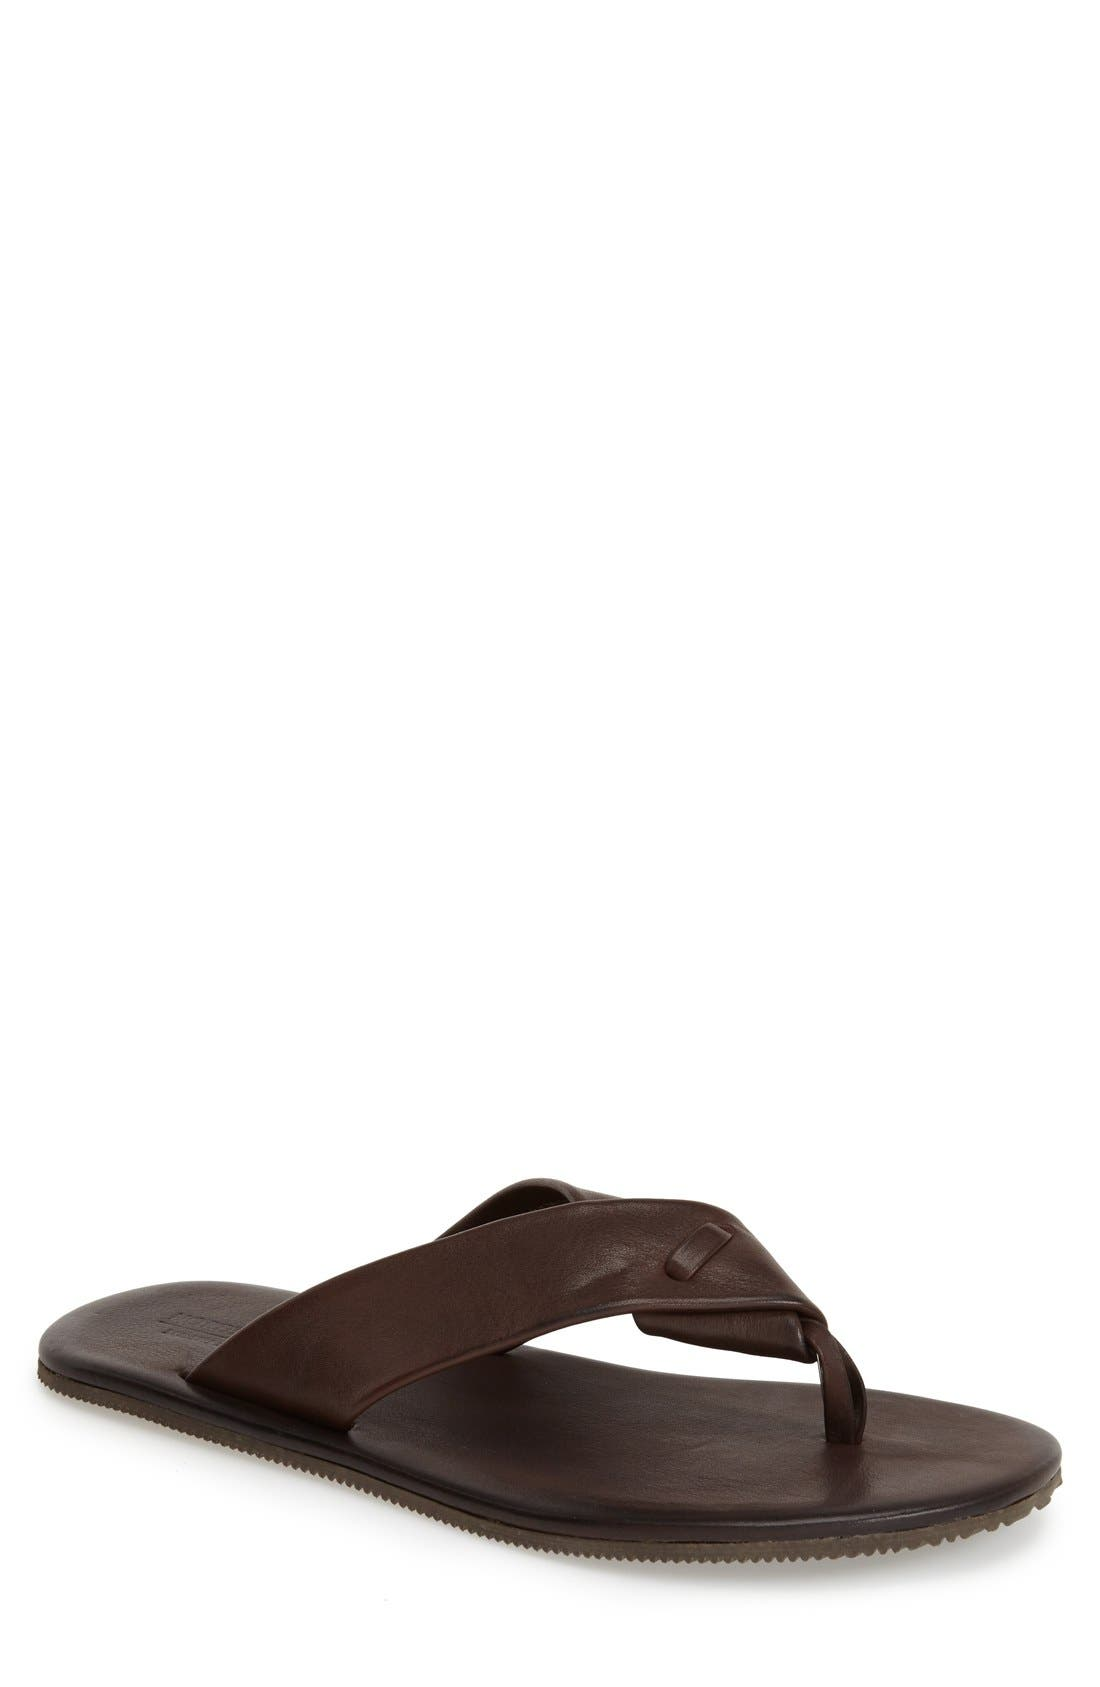 'Breeze' Flip Flop,                         Main,                         color, Brown